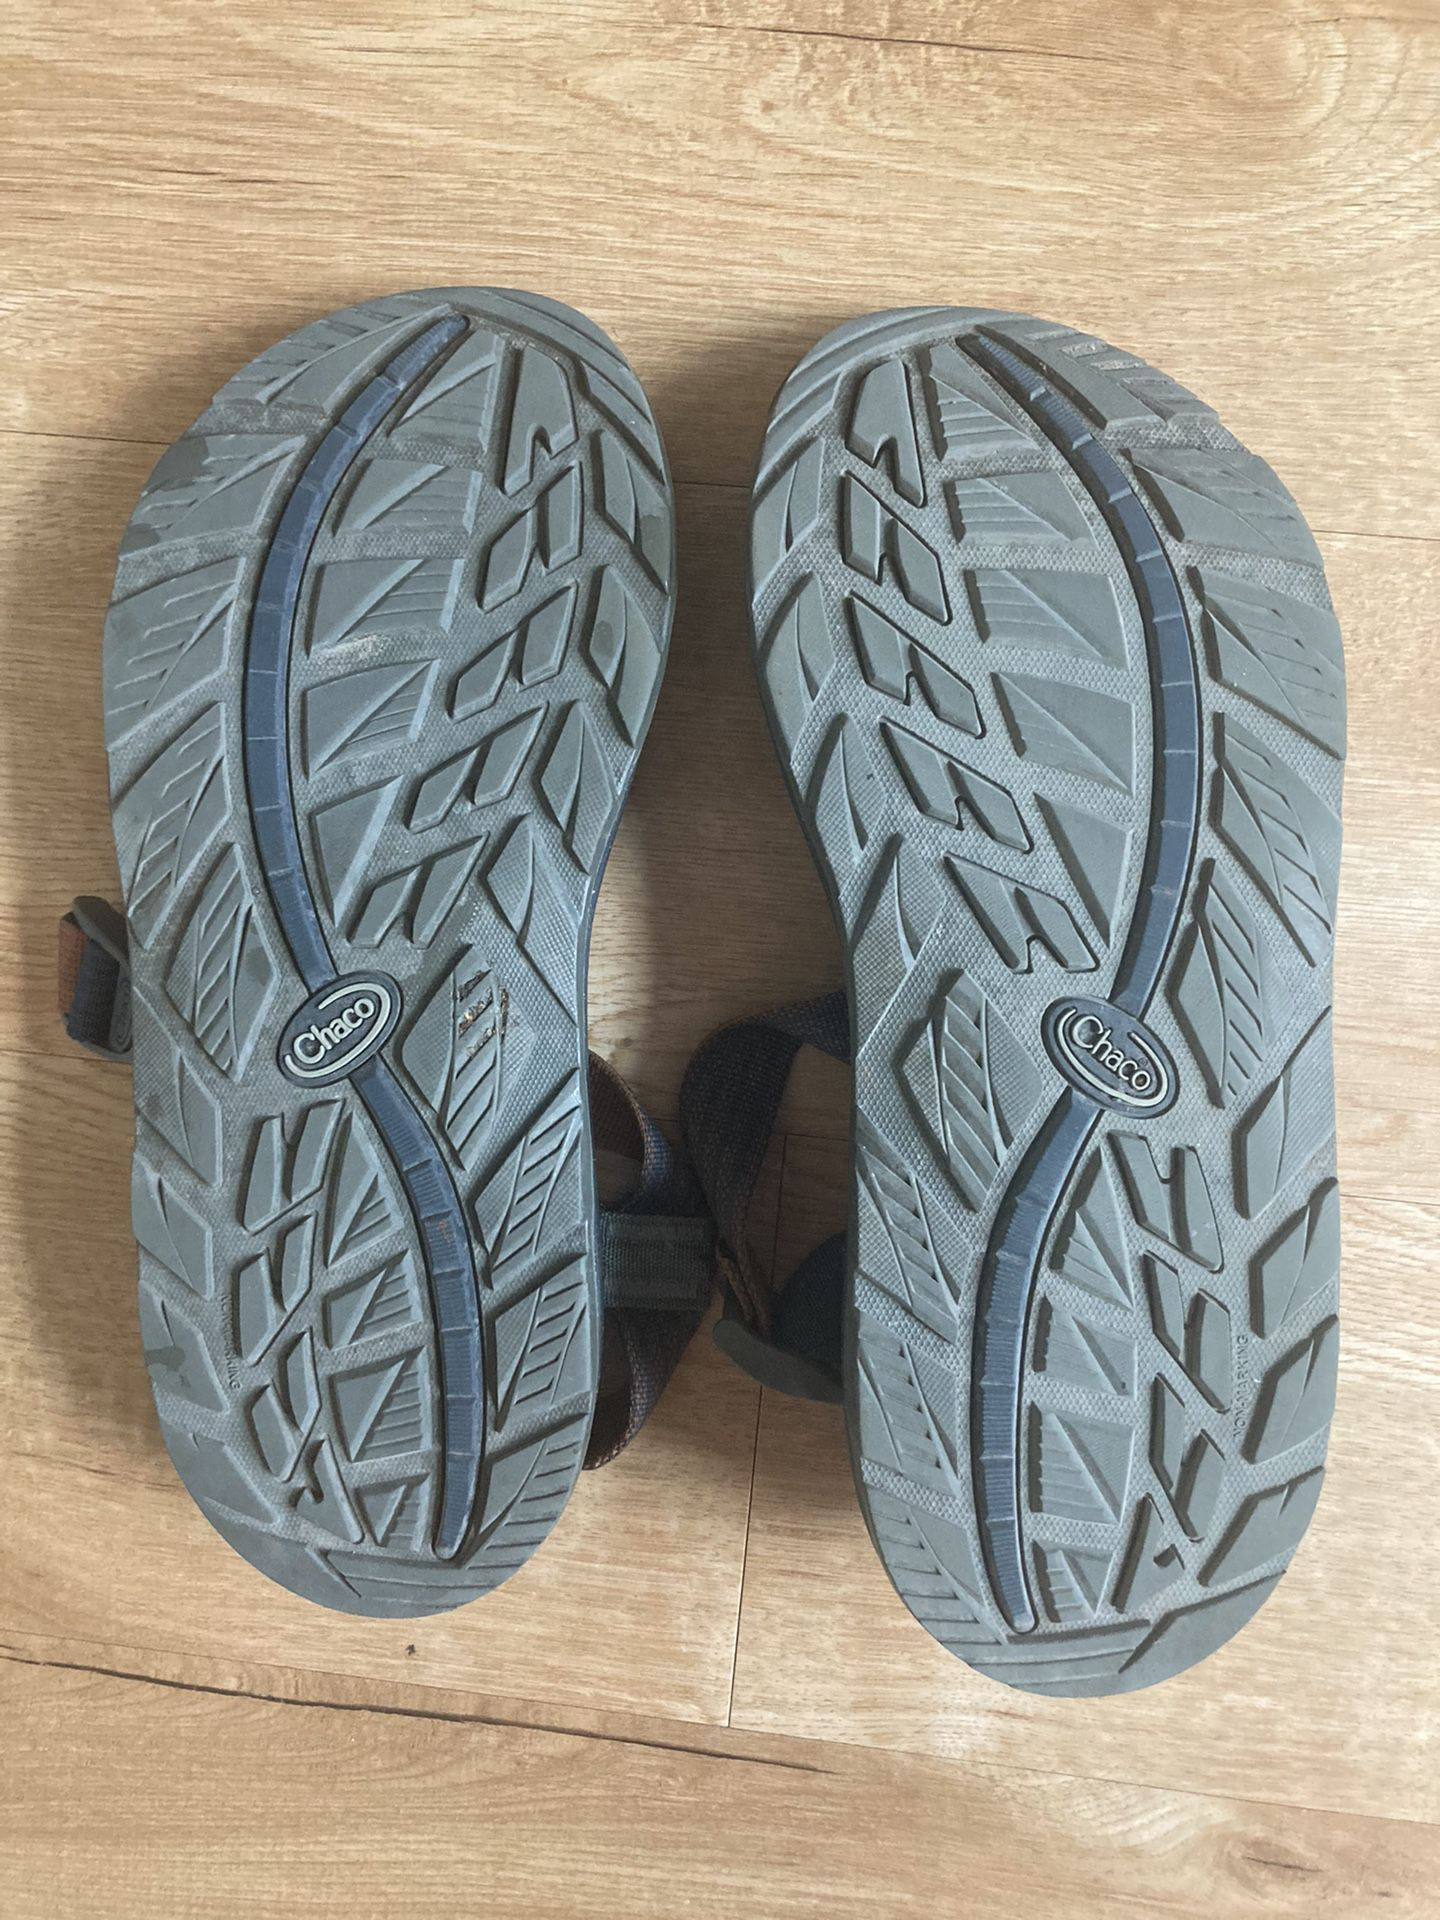 Men's Chacos size 11